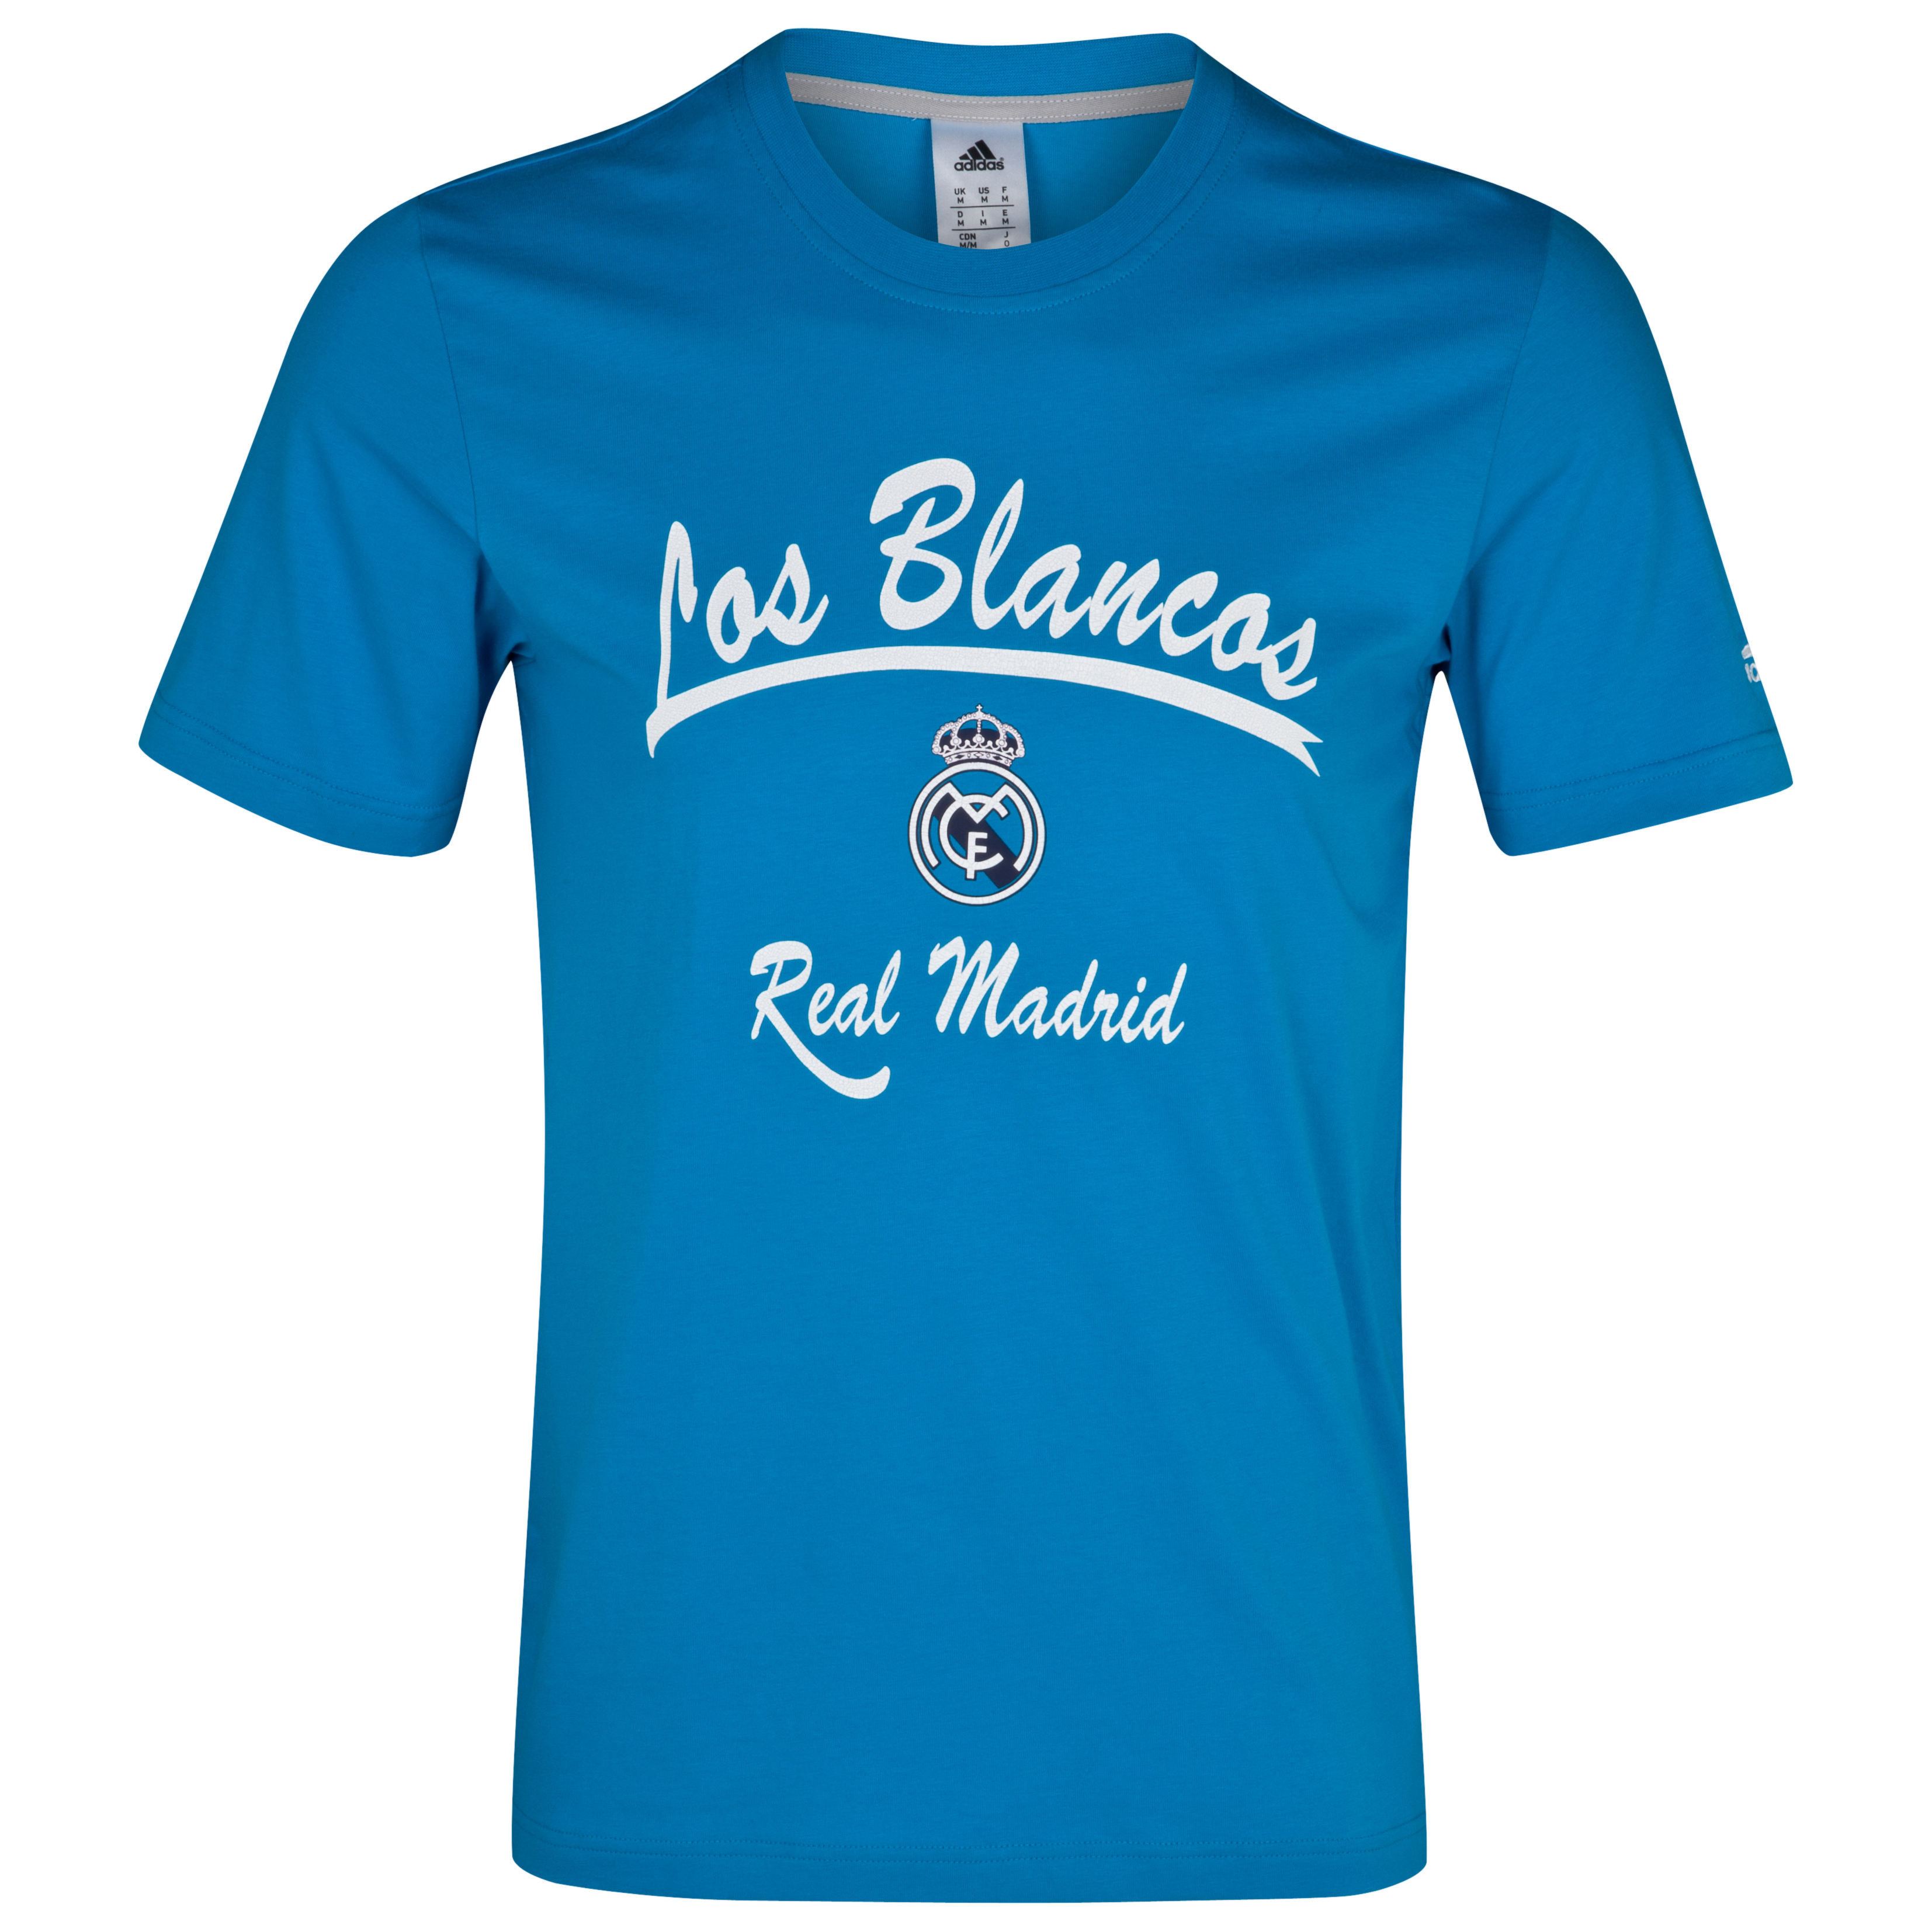 Camiseta grfico Real Madrid - Turquesa/blanco